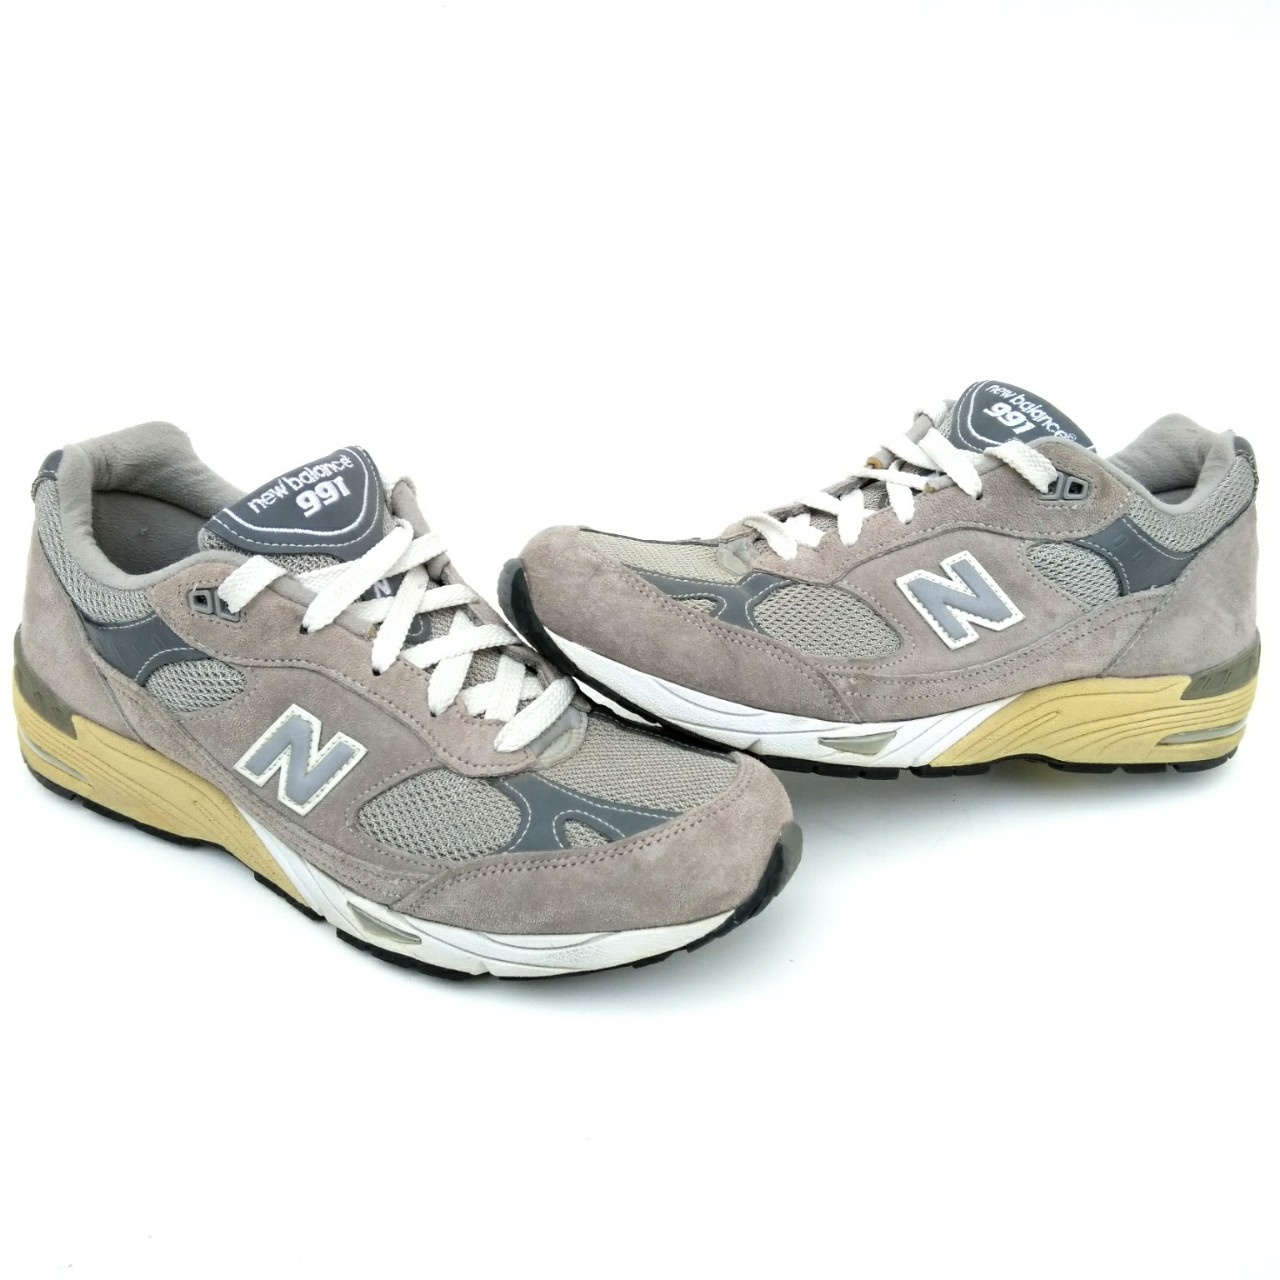 Vintage New Balance 991 Made In Usa W991gr Gray Depop